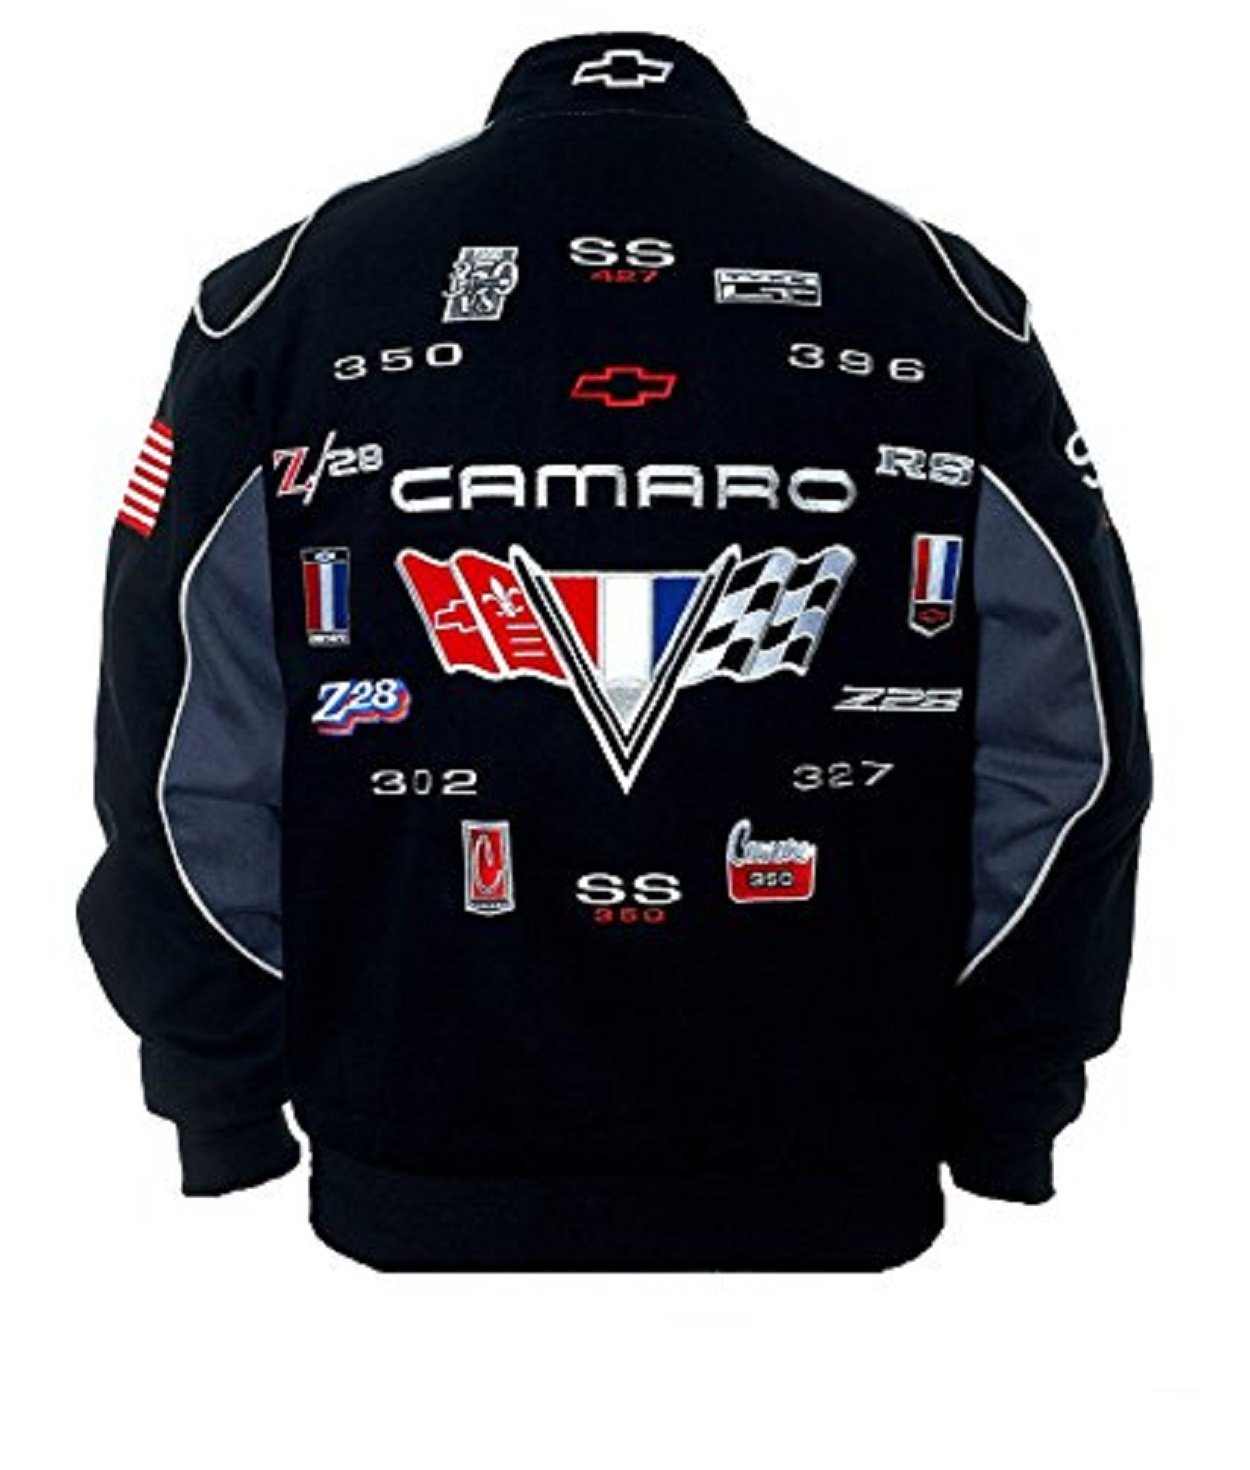 JH DESIGN Camaro Racing Cotton Black Jacket Size XLarge